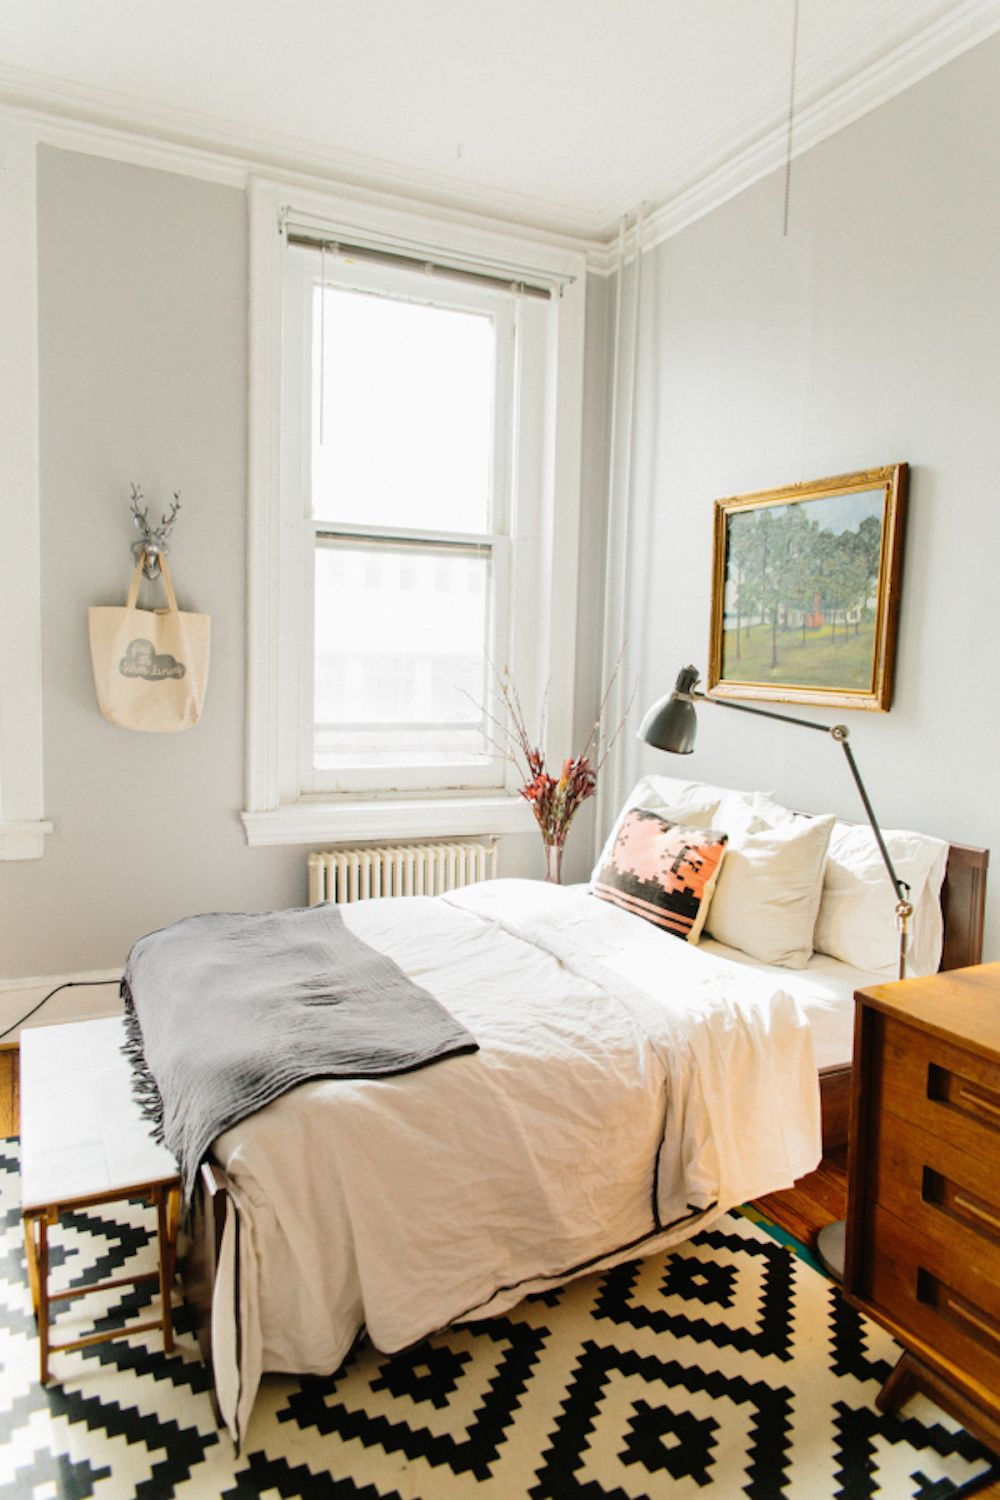 tips for landlords to make a rental property renter friendly